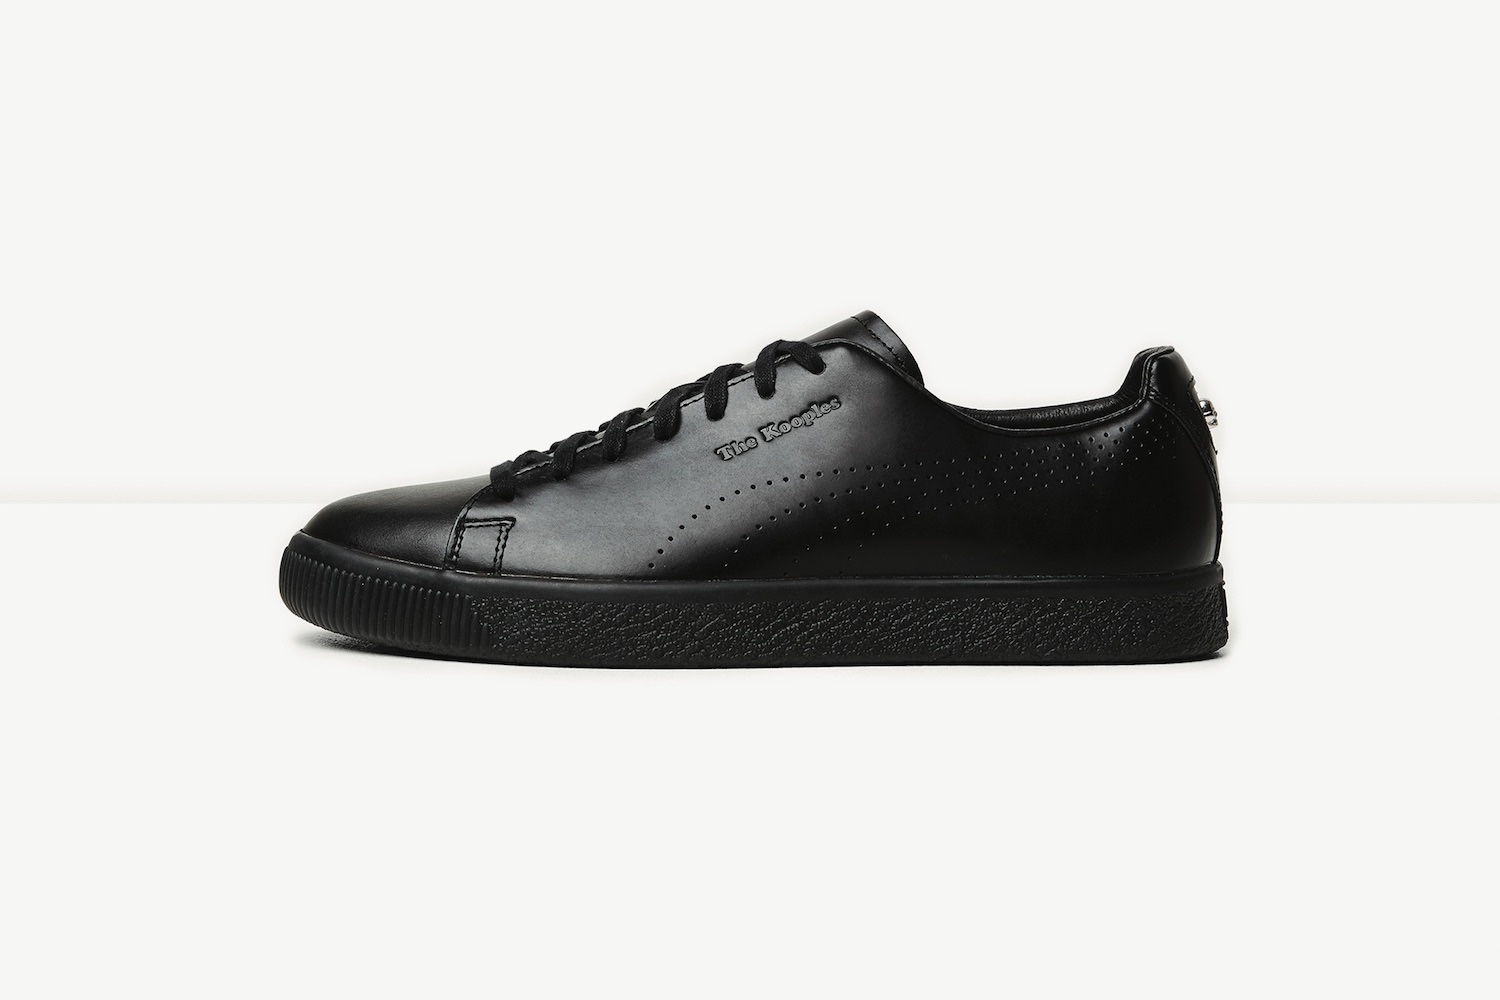 super popular 41cff b0d6e Out Now: The Kooples x Puma Clyde • KicksOnFire.com